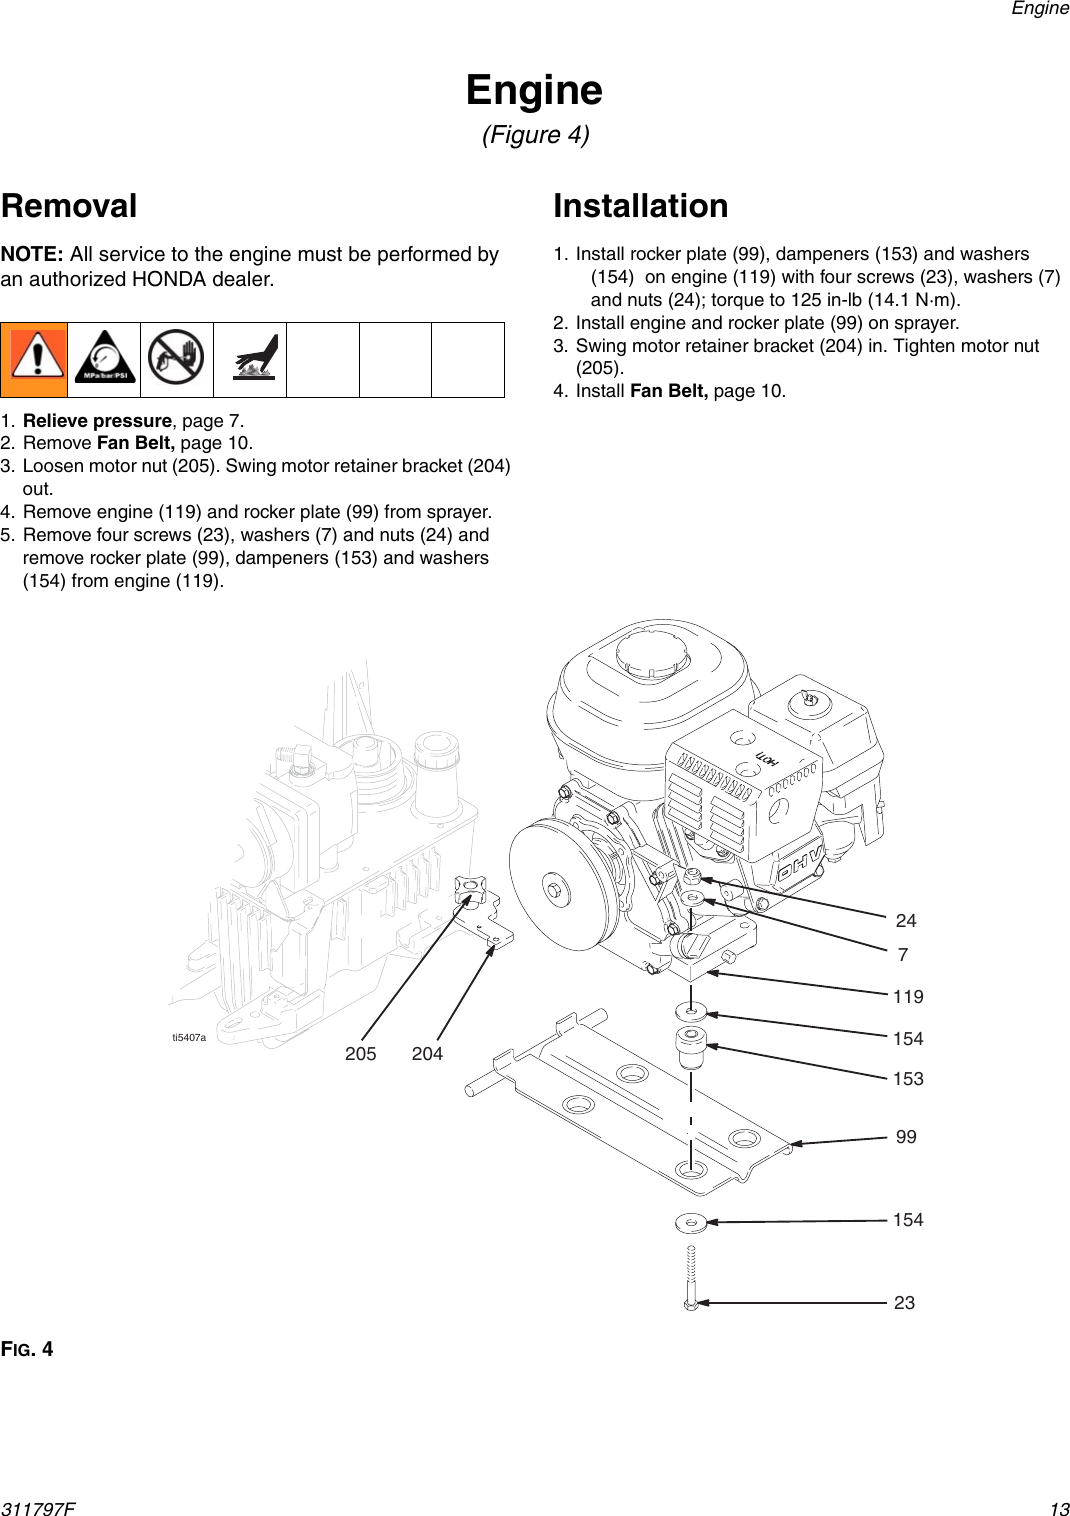 Hitachi Gh 300 Users Manual 311797F GH130, 200, 230 And